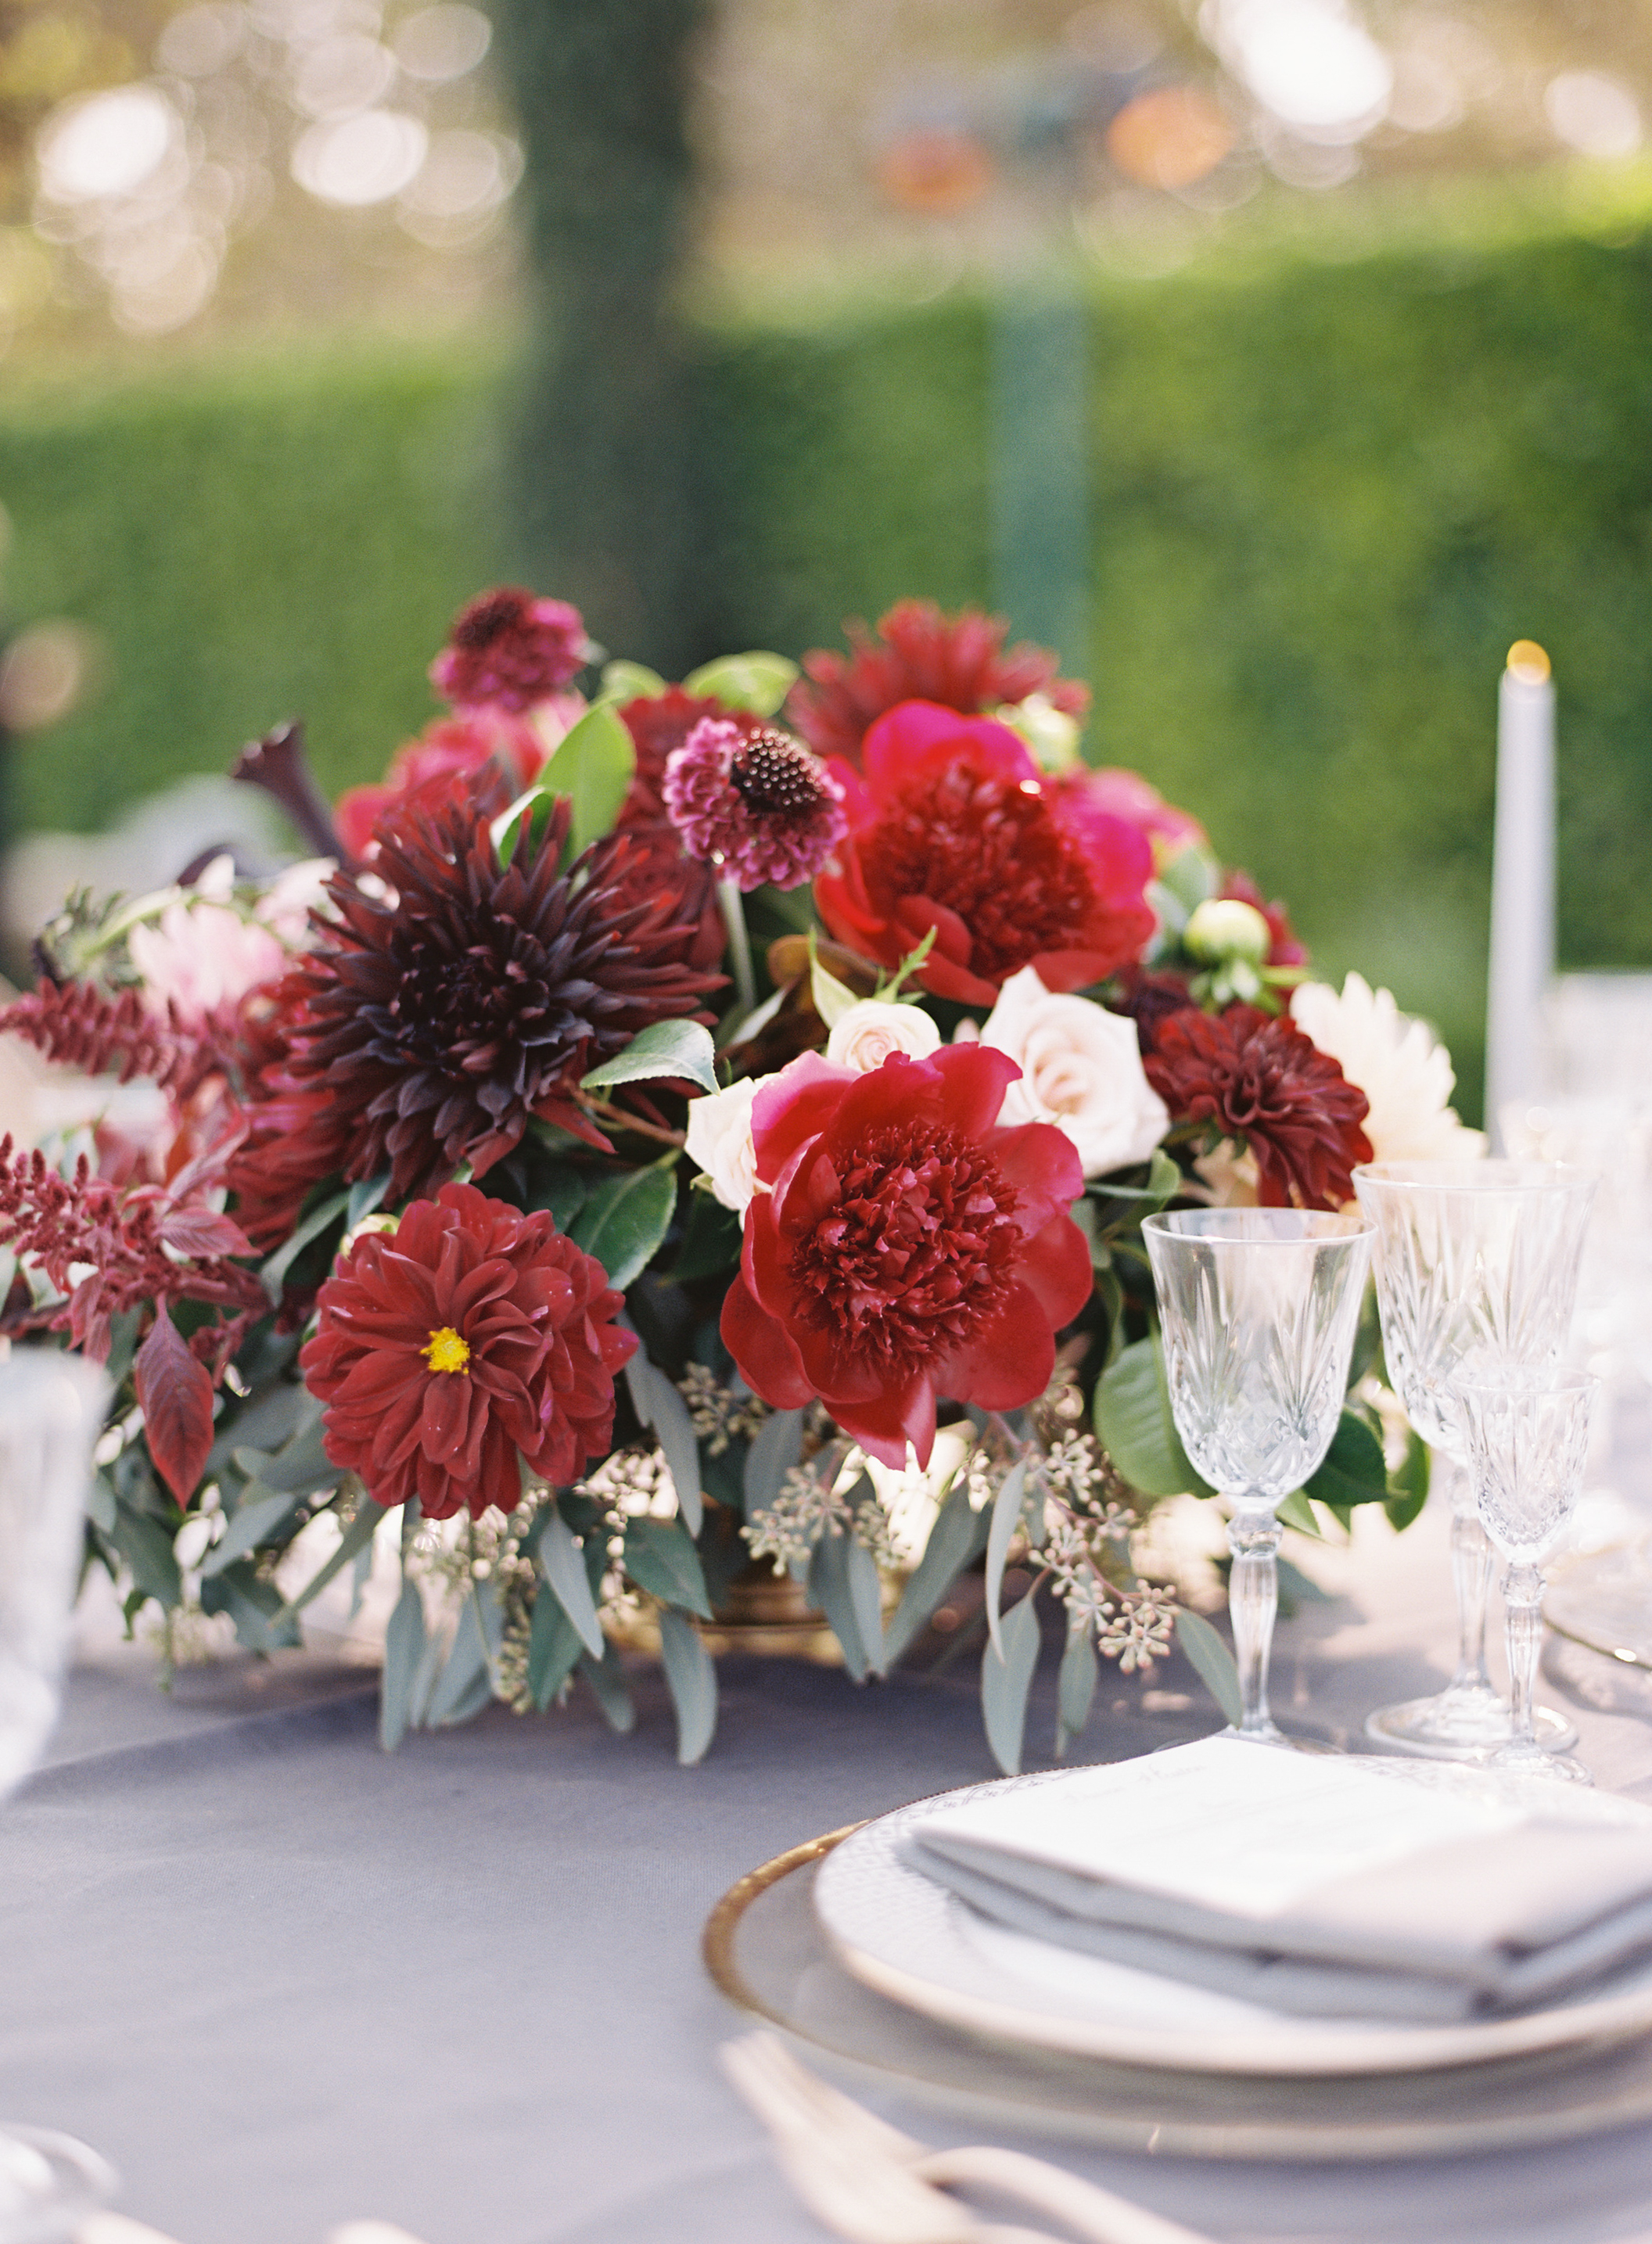 jewel-toned centerpiece with red garden roses